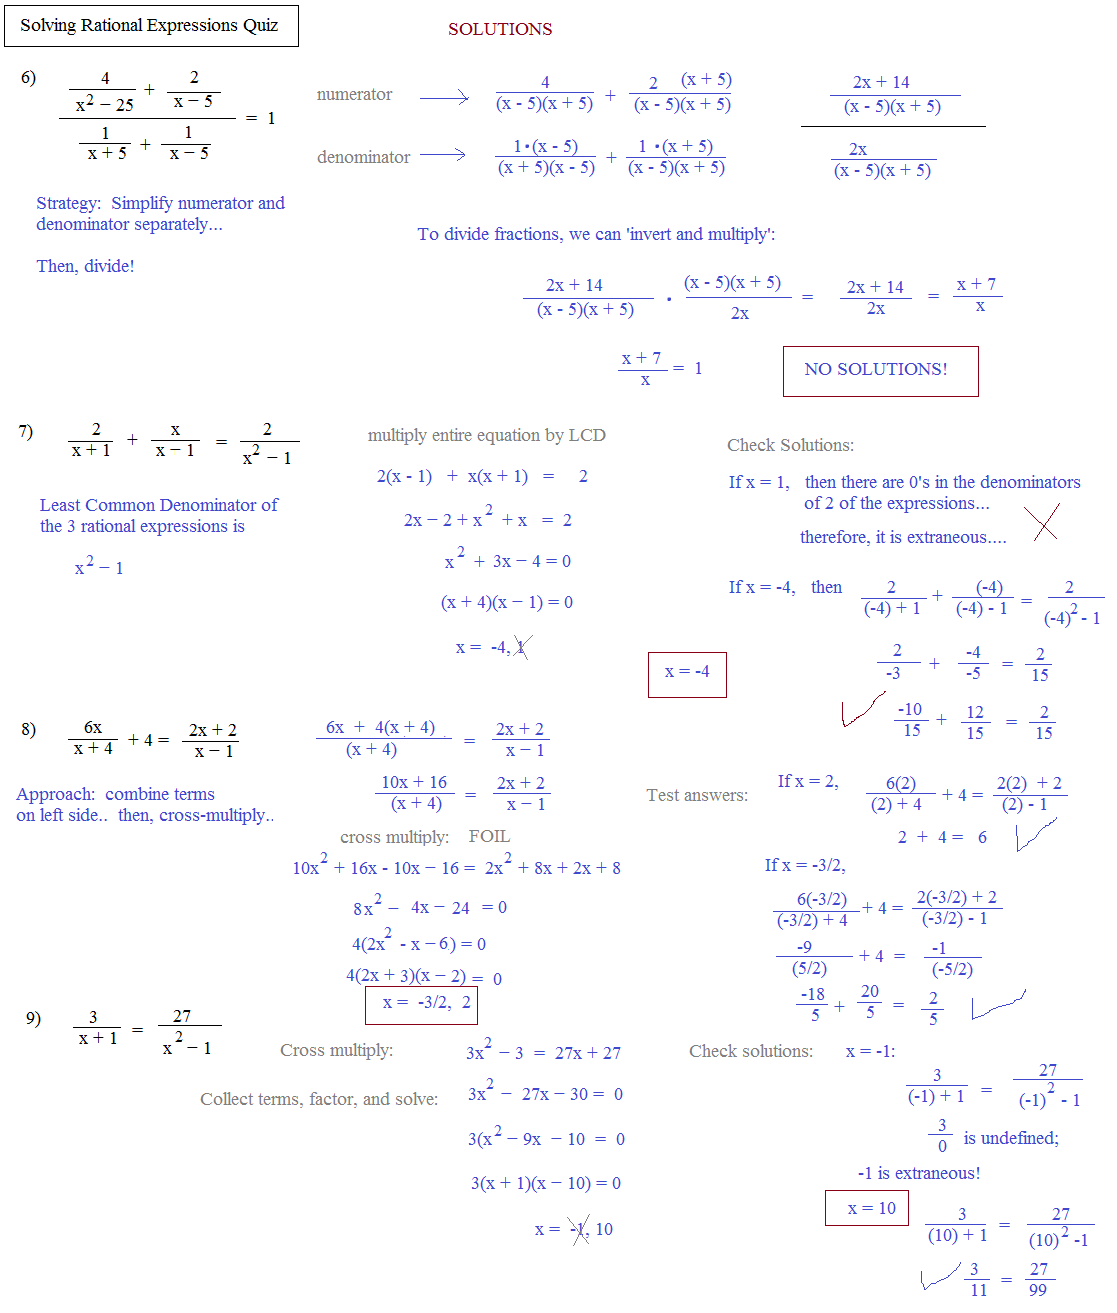 Solving Rational Equations Worksheet Answers Algebra 2 Jennarocca – Solving Rational Equations Worksheet